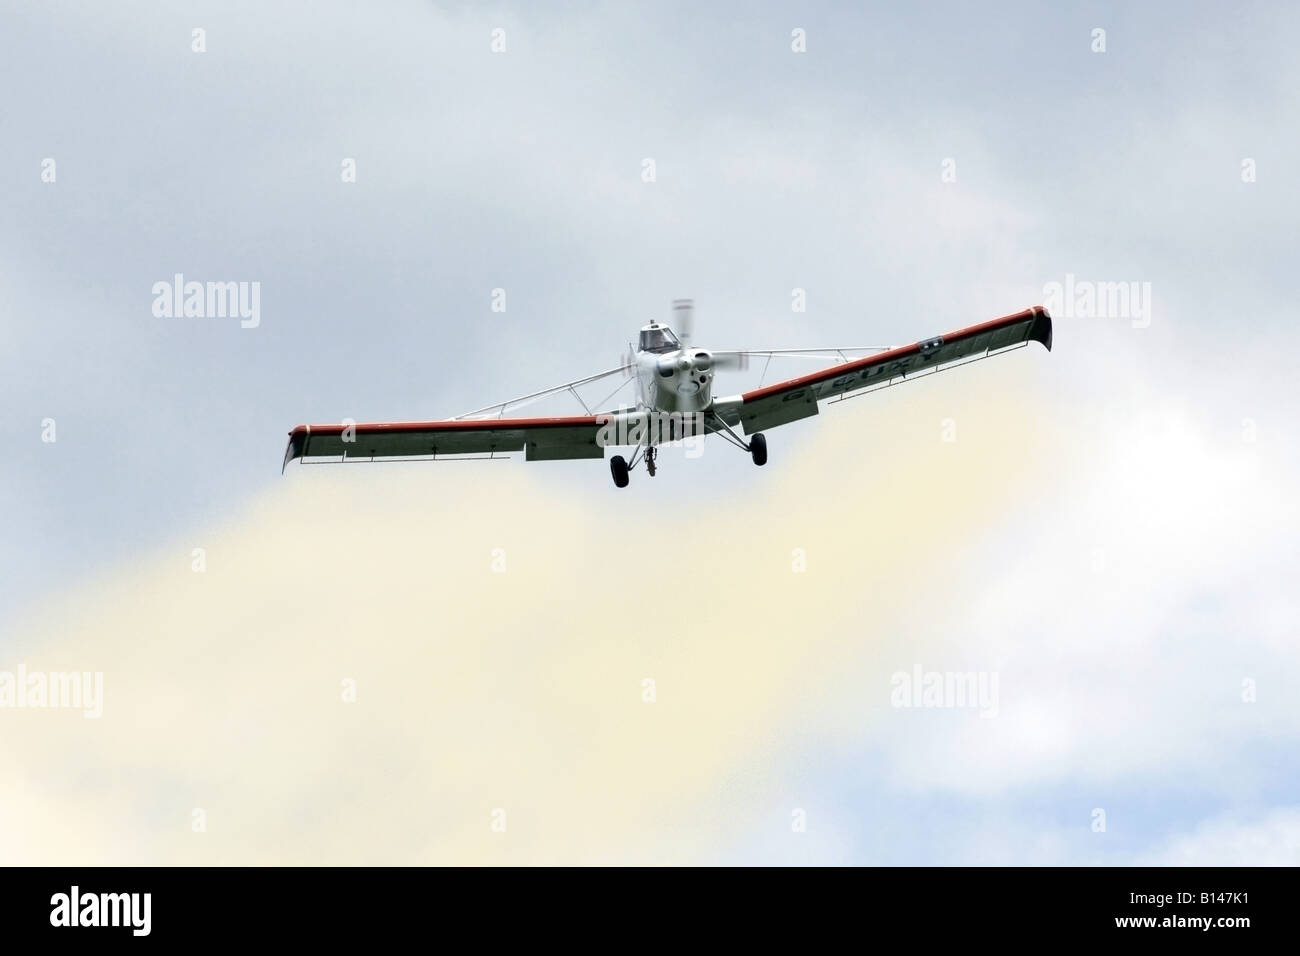 Crop duster aircraft spraying a cocktail of chemicals onto crops in the field below - Stock Image